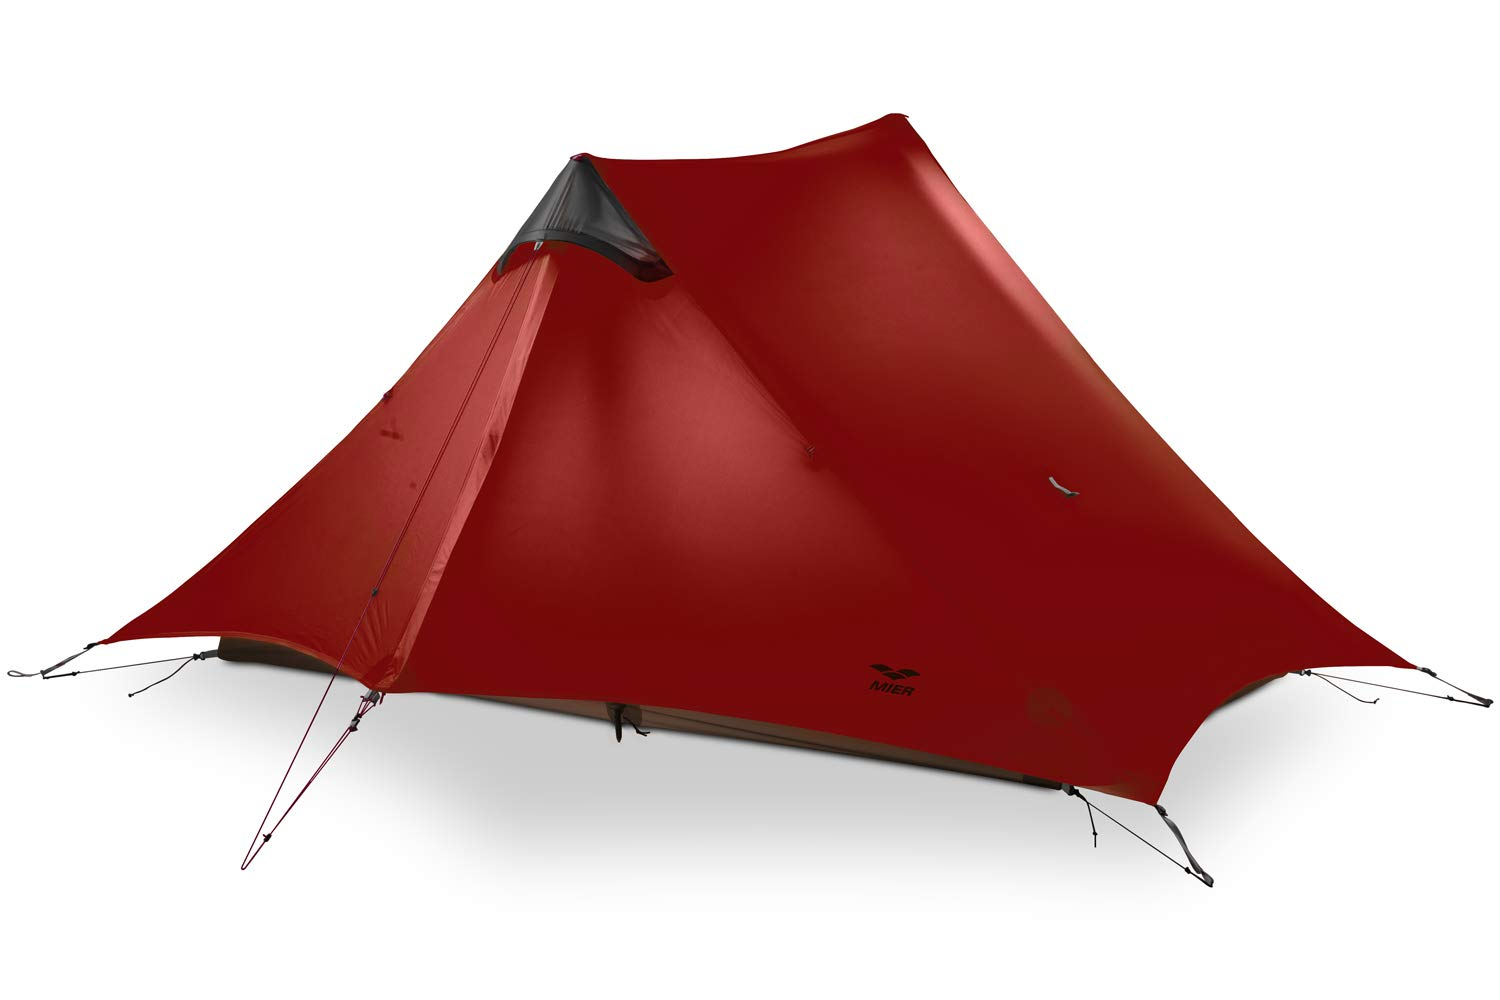 MIER Ultralight Tent 3-Season Backpacking Tent for 1-Person or 2-Person Camping, Trekking, Kayaking, Climbing, Hiking (Trekking Pole is NOT Included), red and Black, 2-Person by MIER